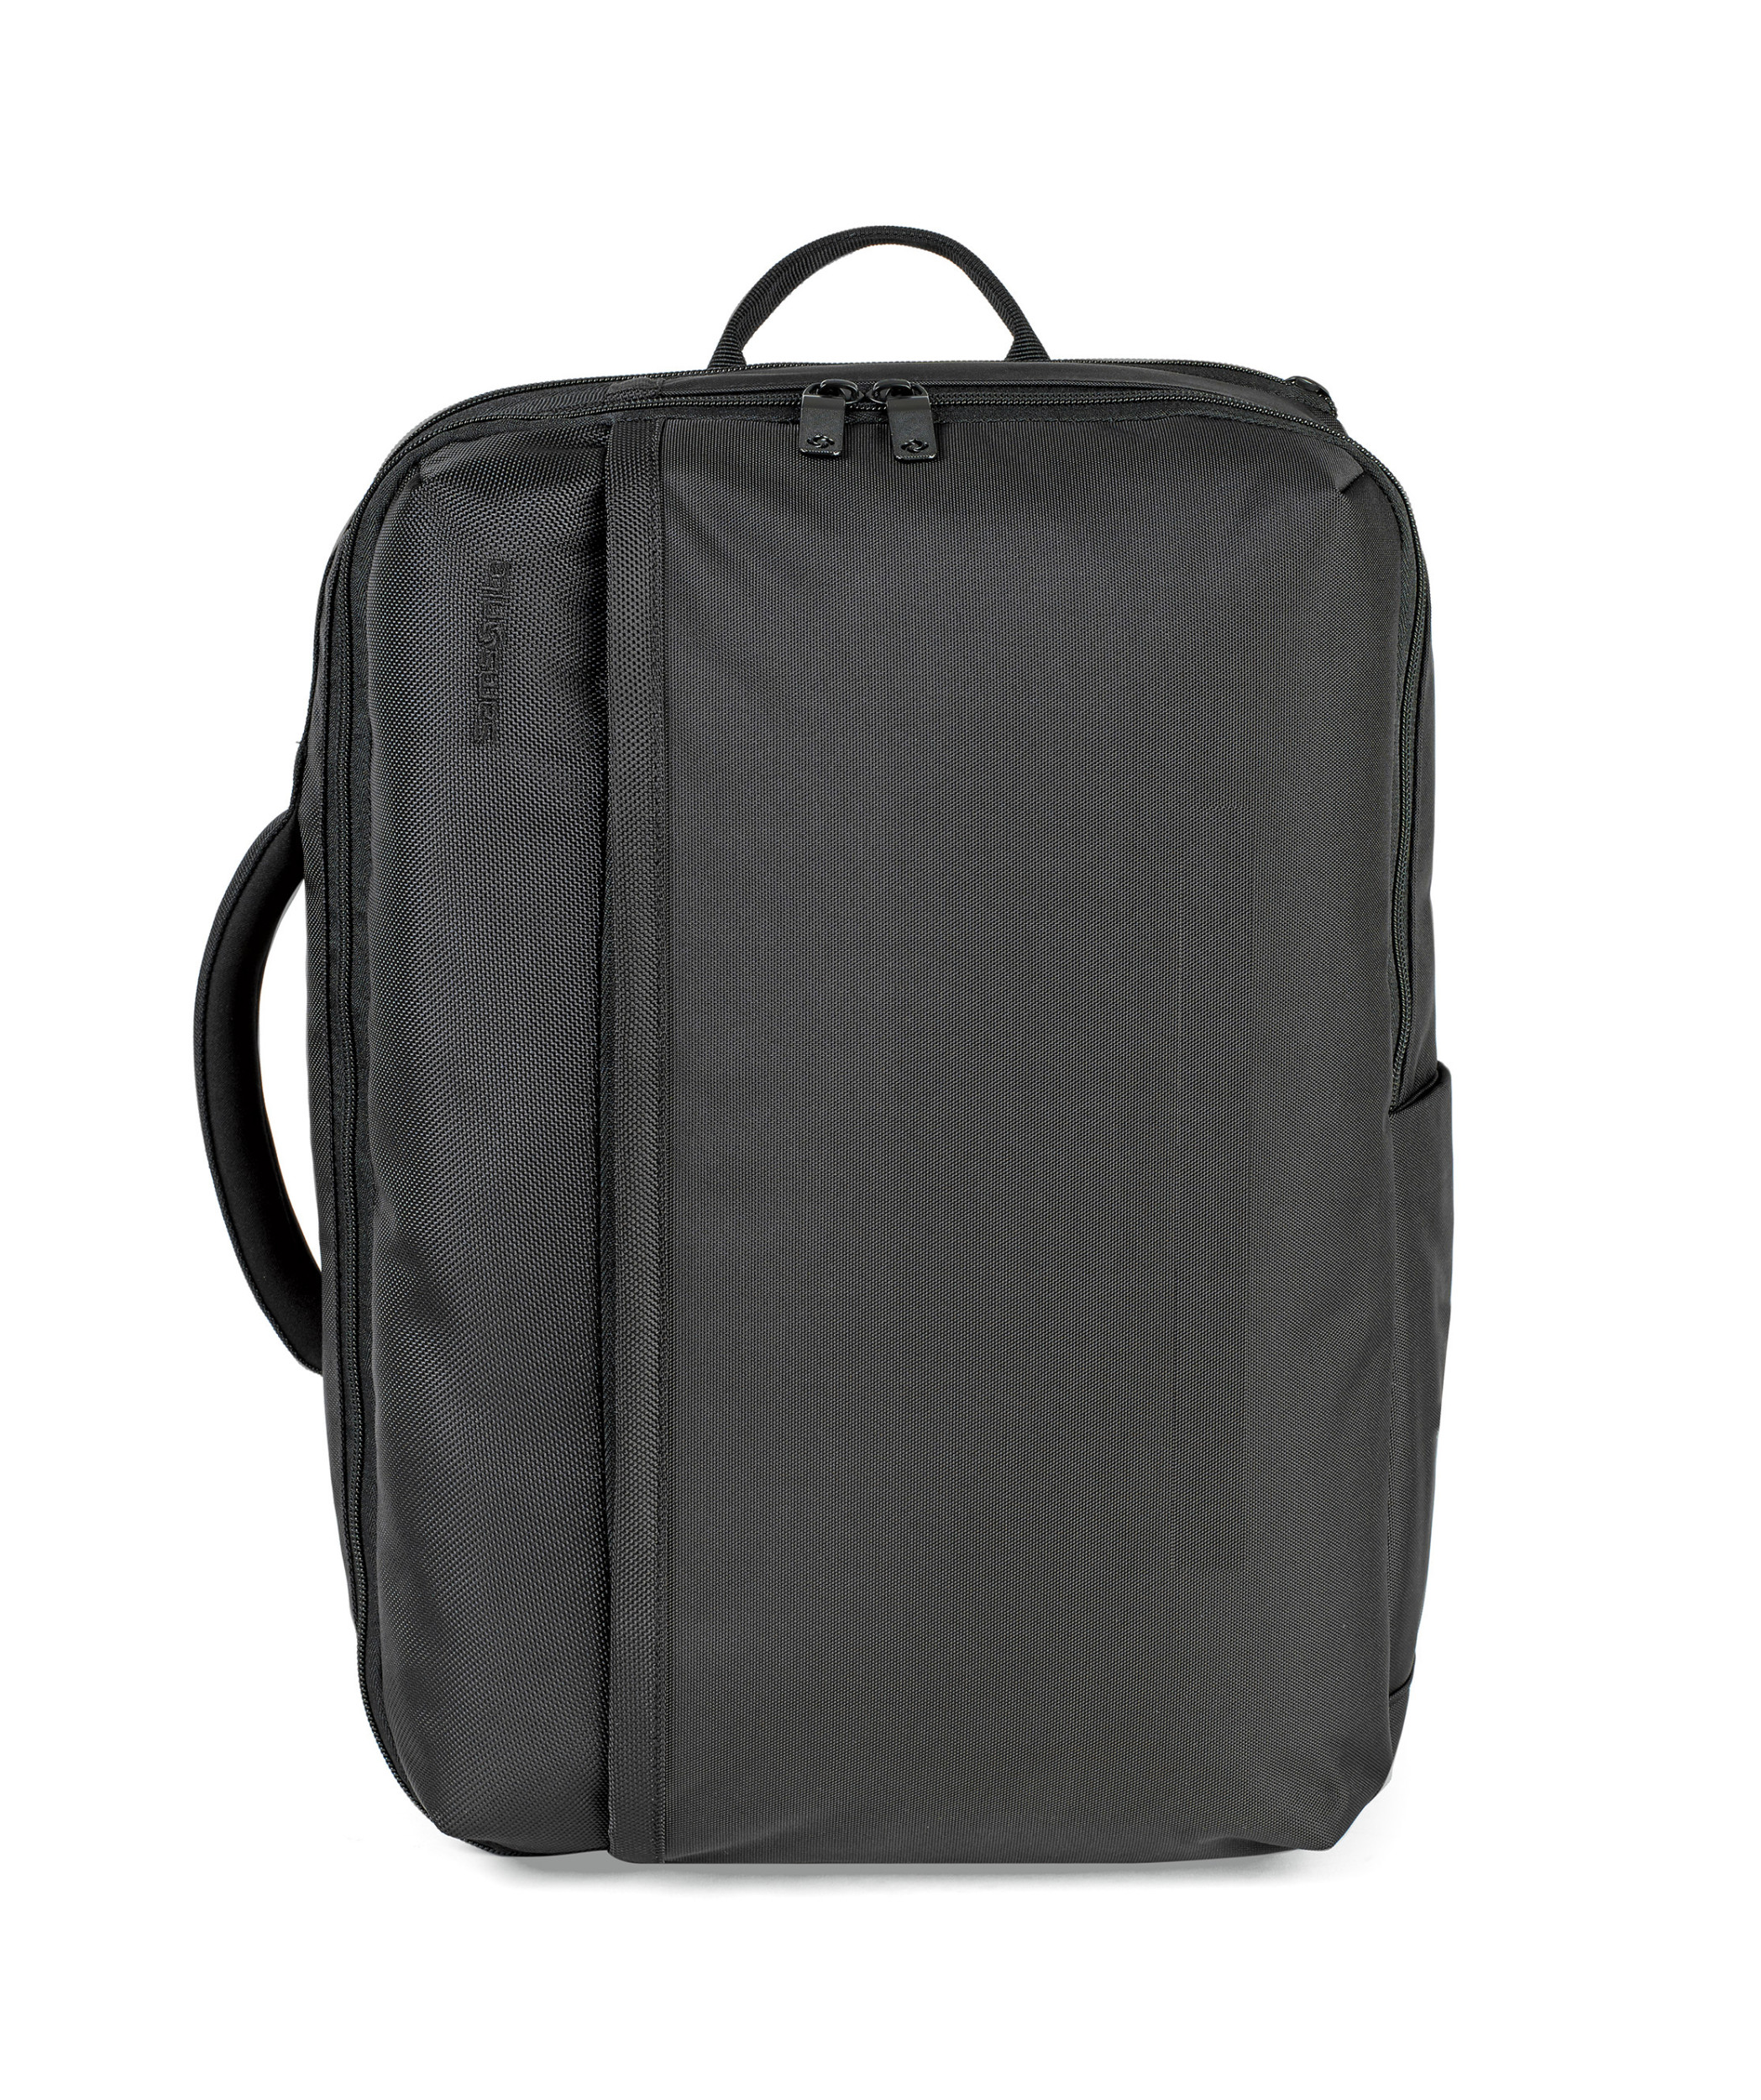 Samsonite 100095-001 - Landry Computer Backpack